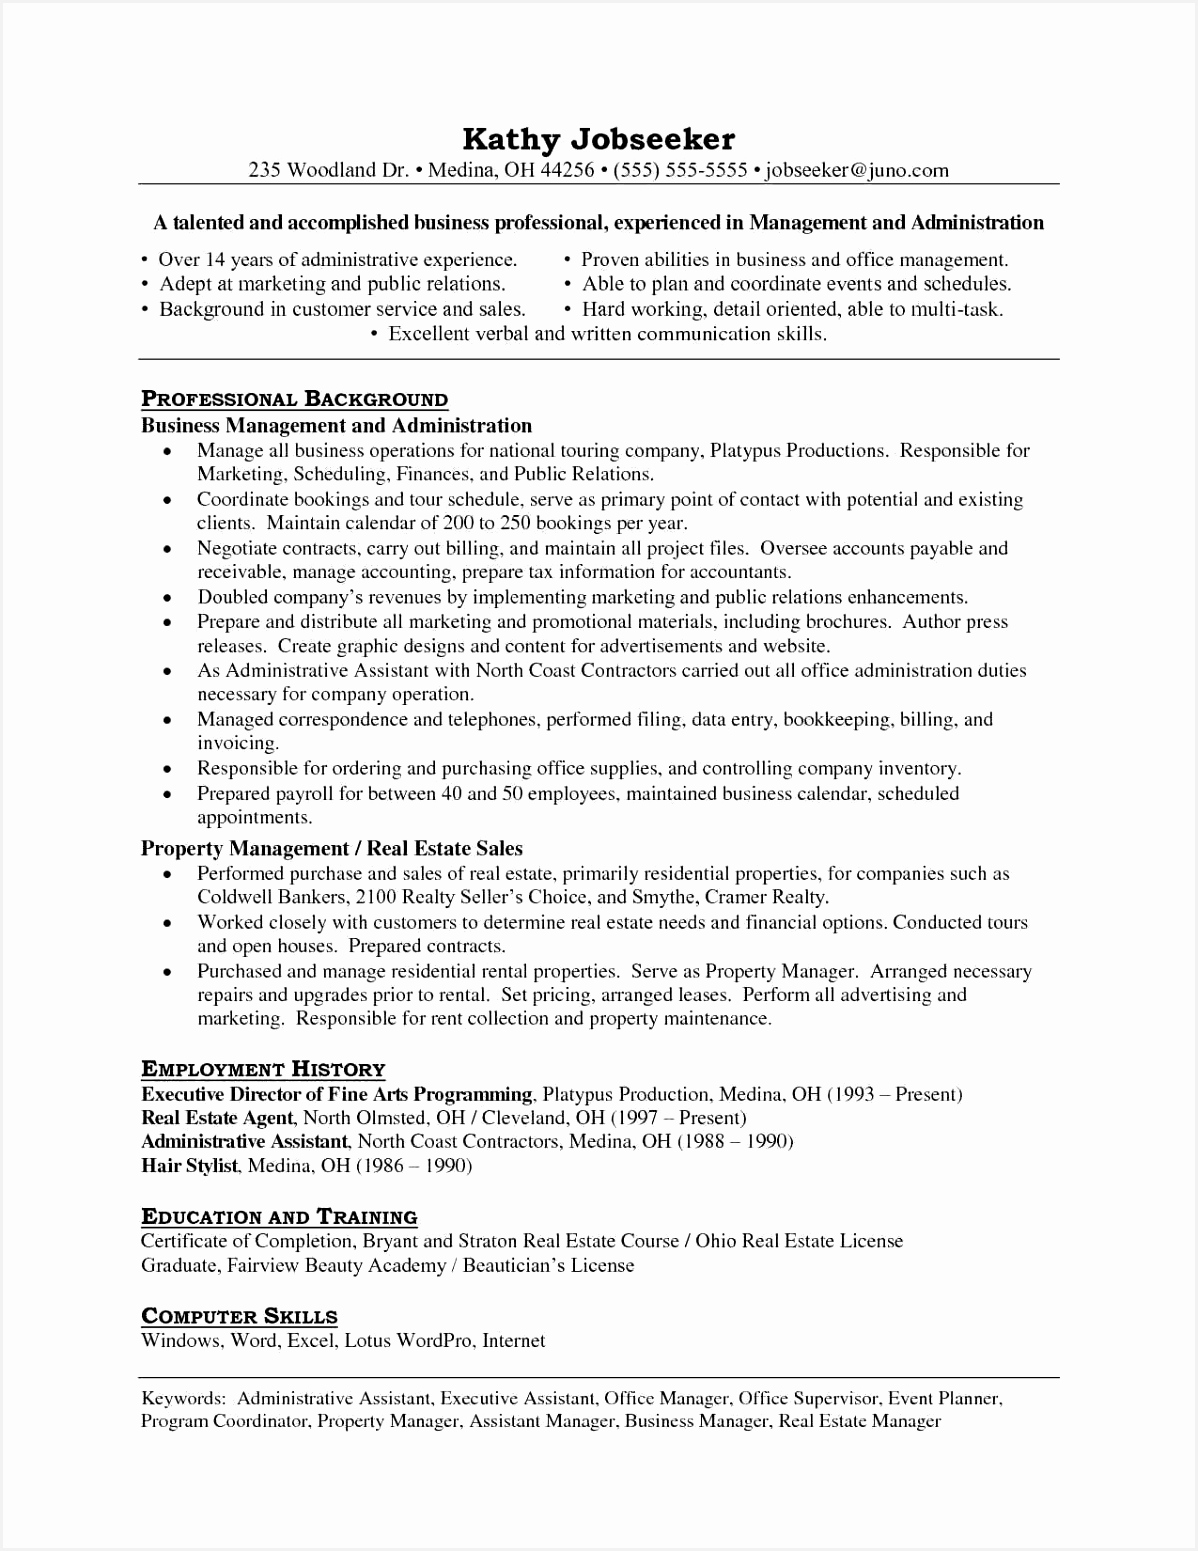 Manager assistant Sample Resume Neupg Unique Sample Executive Director Resume Of Manager assistant Sample Resume E2elo Luxury assistant Manager Job Description Resume Examples 29 Bank Manager